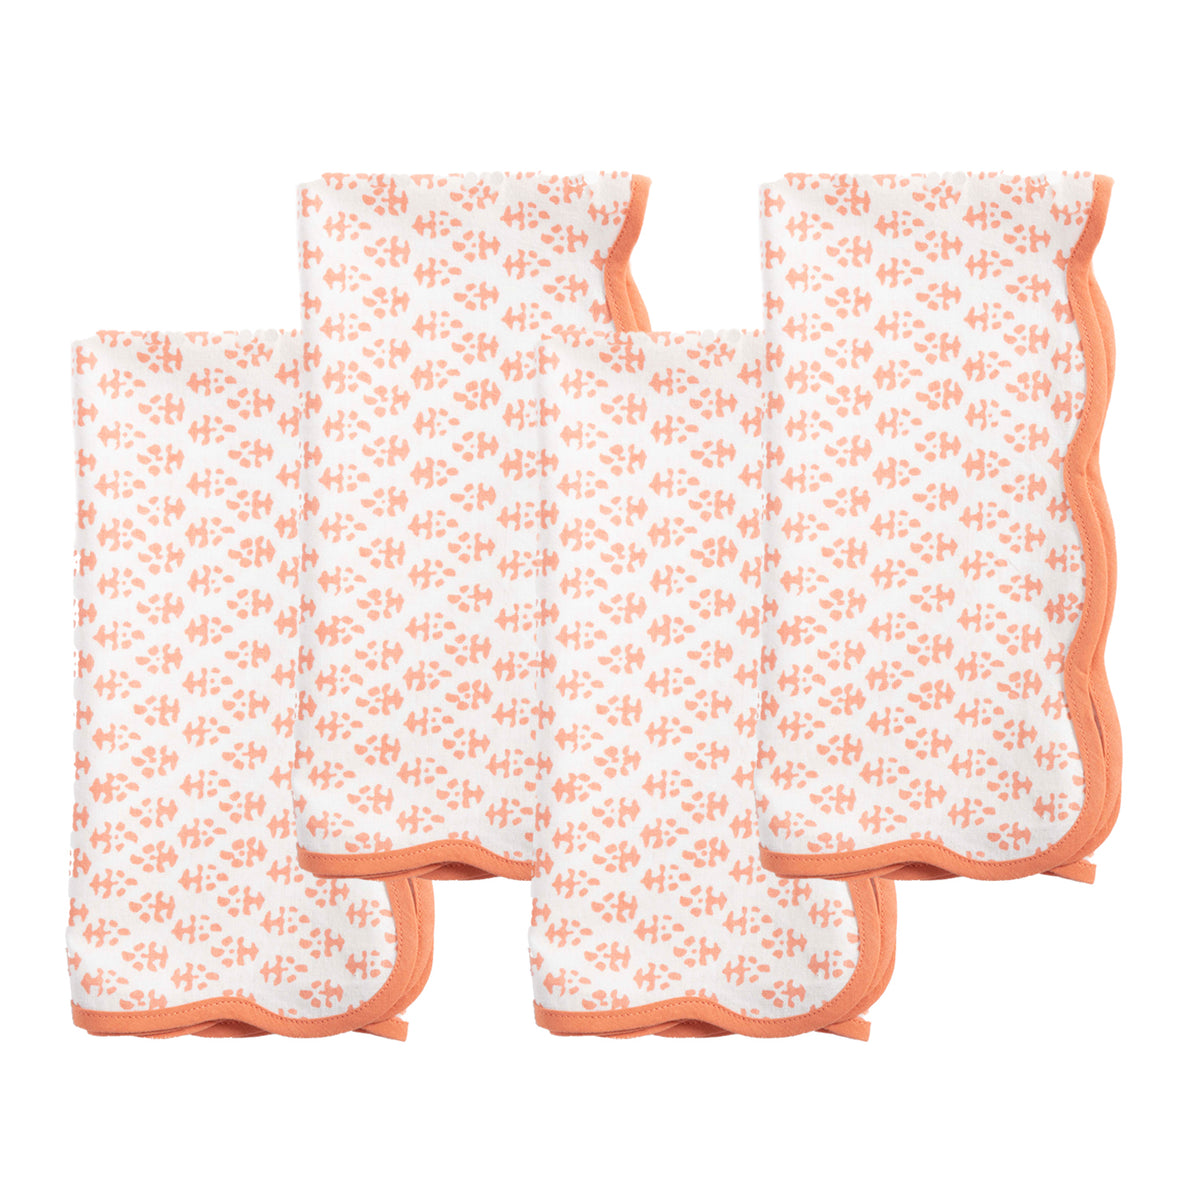 Batik Napkins Coral, Set of 4